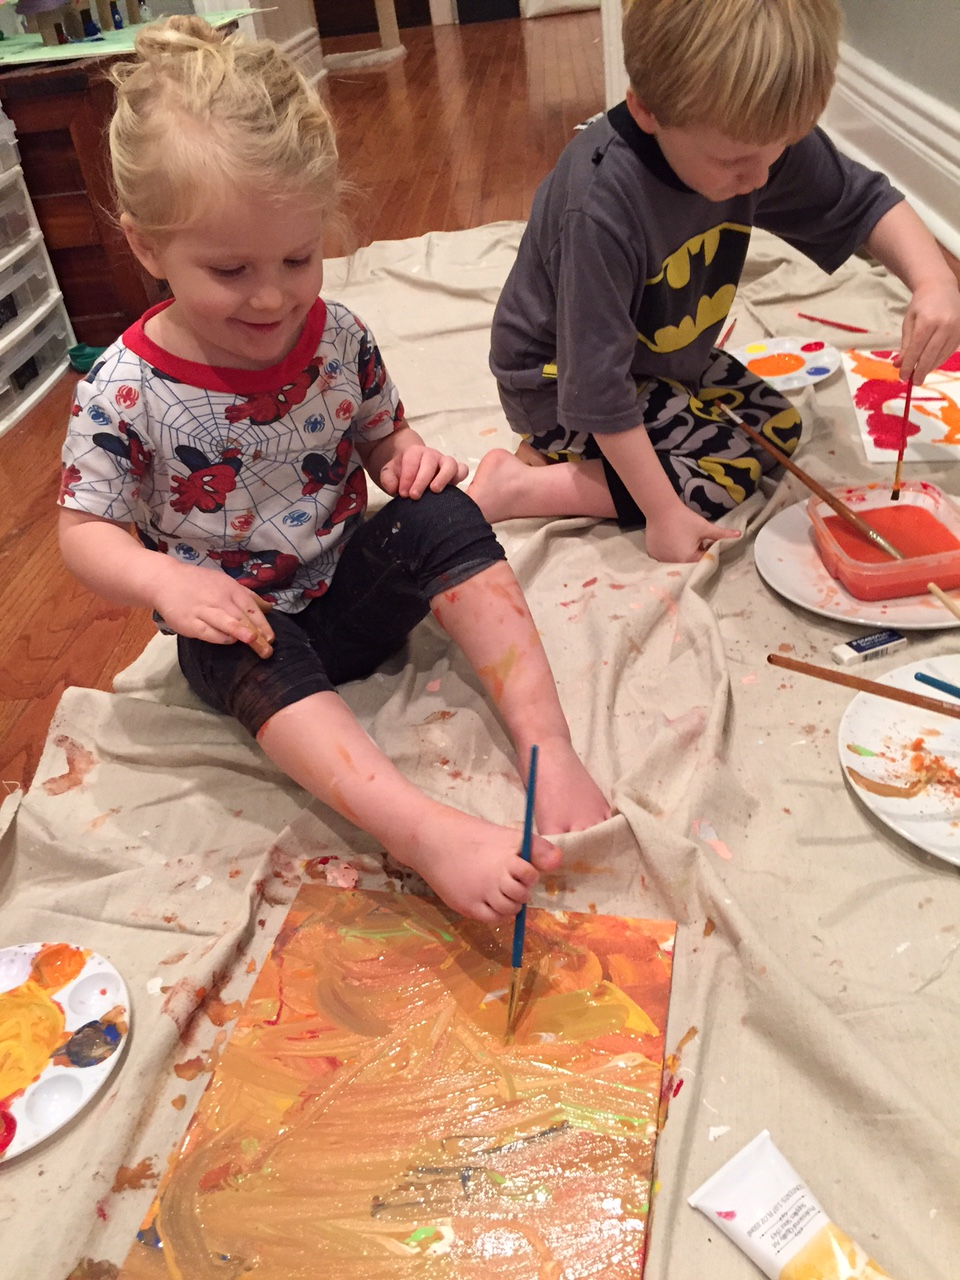 Painting with feet LJ 1.16